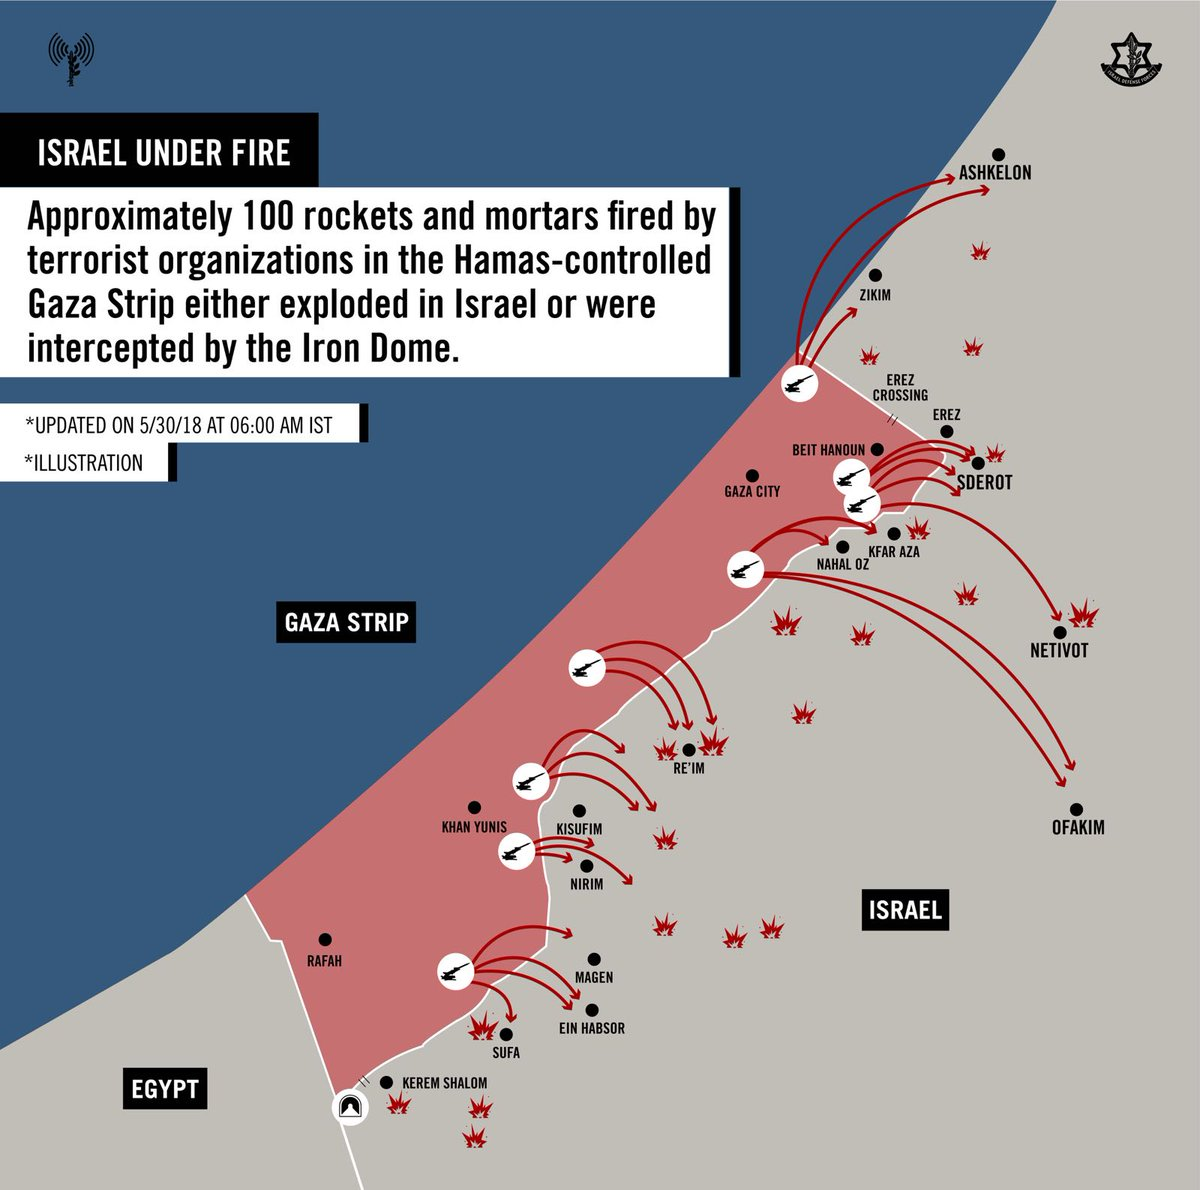 Gaza Strip Escalation - May 29-30, 2018 (Map, Photos, Videos) on palestinian people, sea of galilee, oman map, tel aviv, plateau of iran map, yasser arafat, himalayas map, palestinian territories, east jerusalem, bangladesh map, greece map, united kingdom map, world map, jordan river, morocco map, middle east political map, west bank, six-day war, western sahara map, indonesia map, sinai peninsula map, ethiopia map, iberian peninsula map, yom kippur war, austria map, golan heights, iudaea province map, philippines map, jerusalem map, oslo accords, yemen map, sinai peninsula, western wall, portugal map,